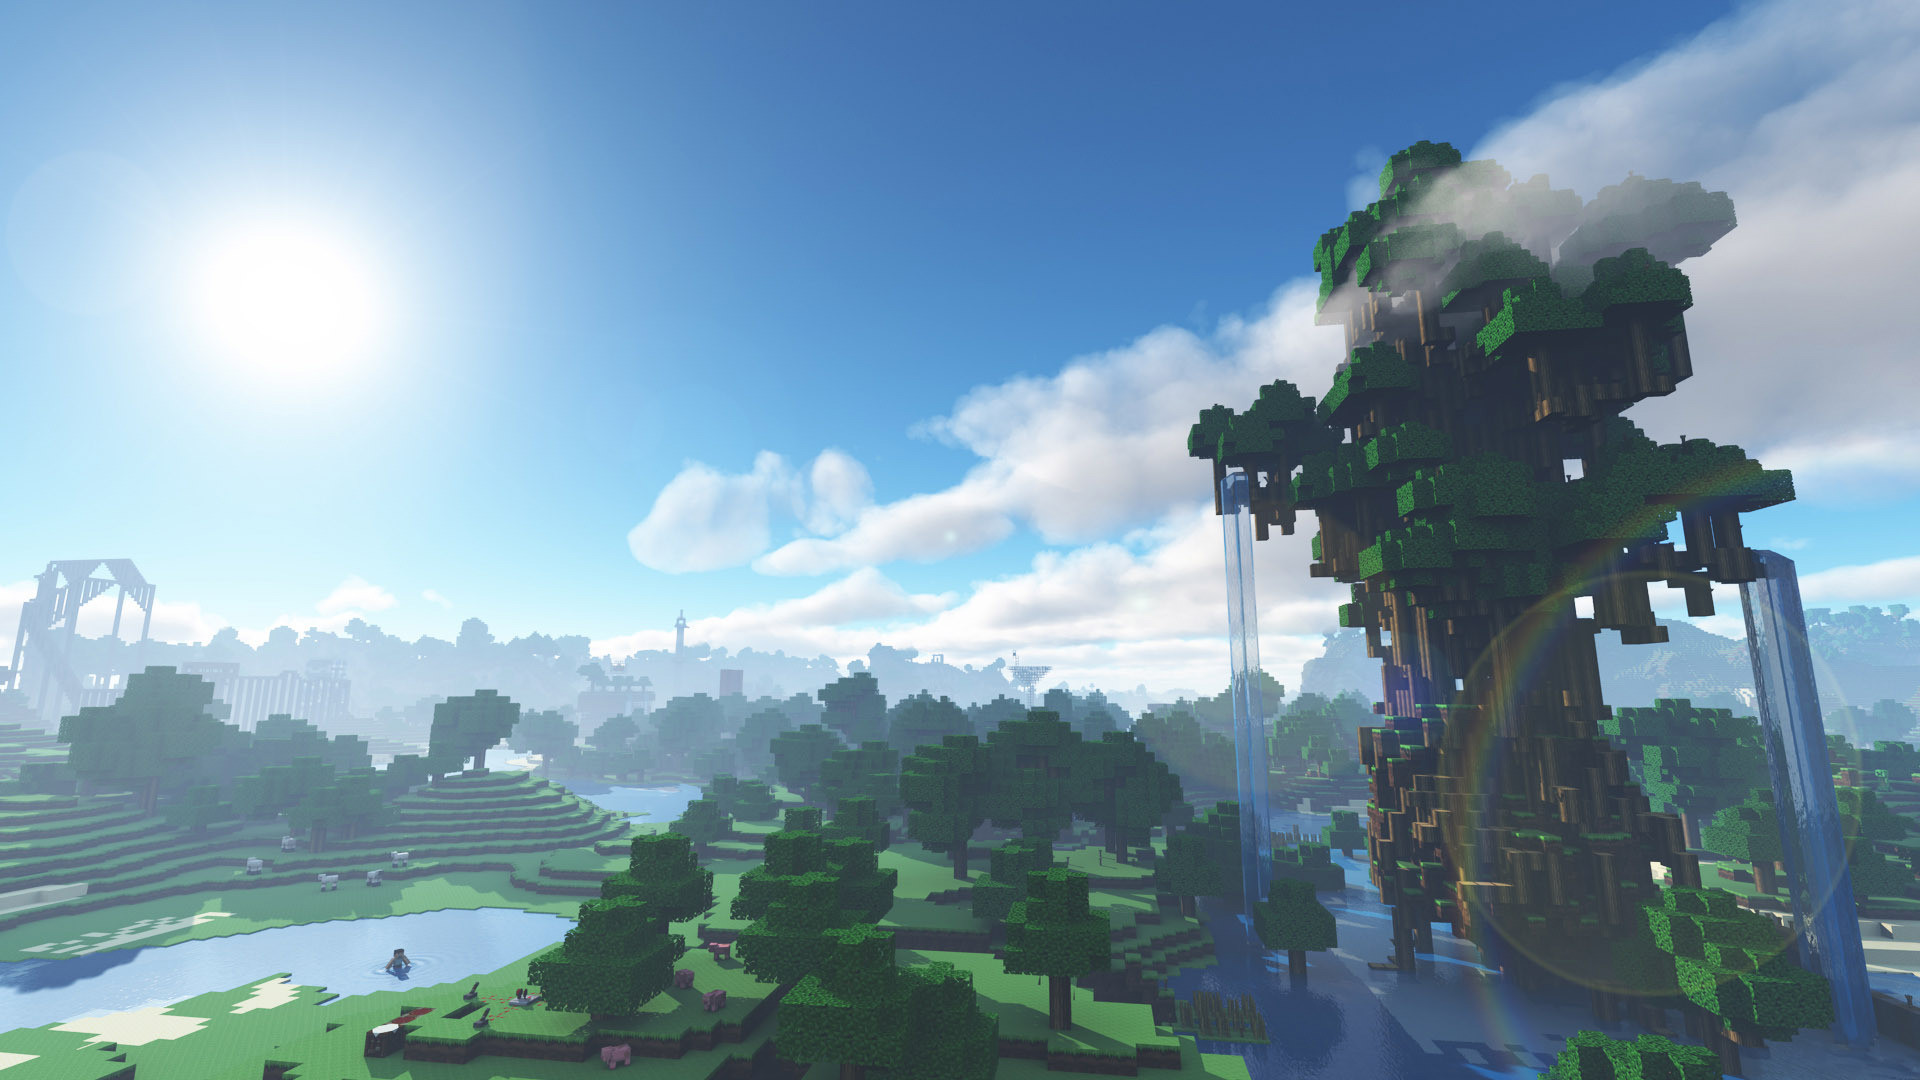 Must see Wallpaper Minecraft Samsung - 419997-cool-hd-minecraft-backgrounds-1920x1080-for-samsung  Trends_259951.jpg